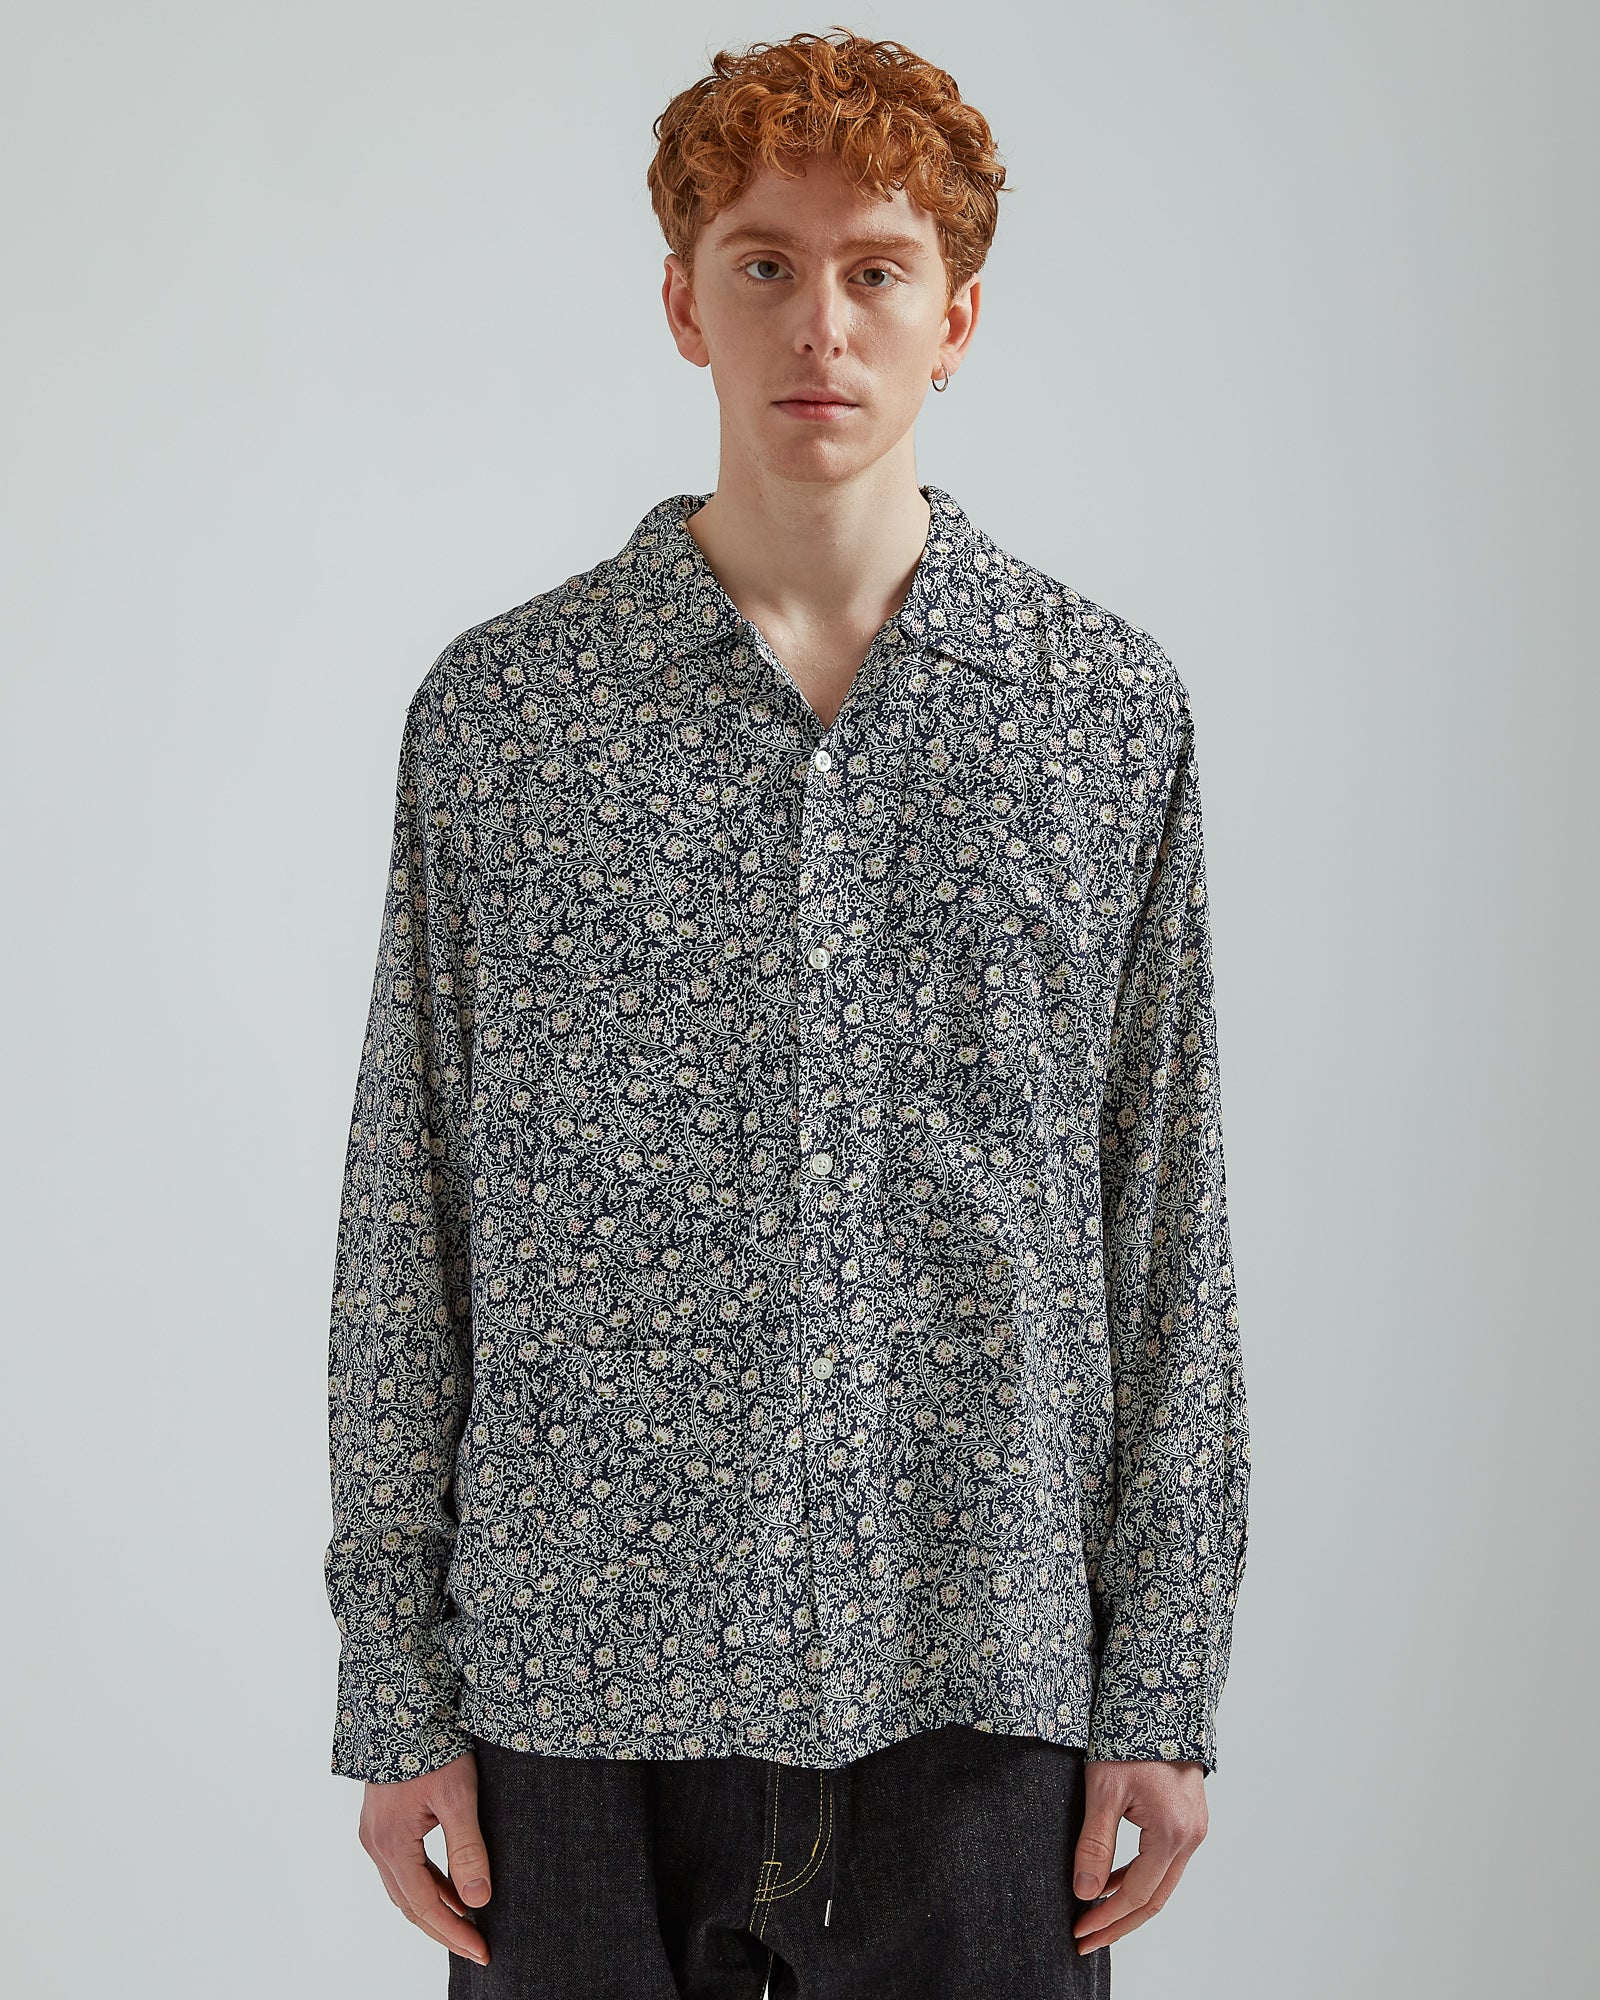 Froret Print 6 Pocket Shirt in Navy